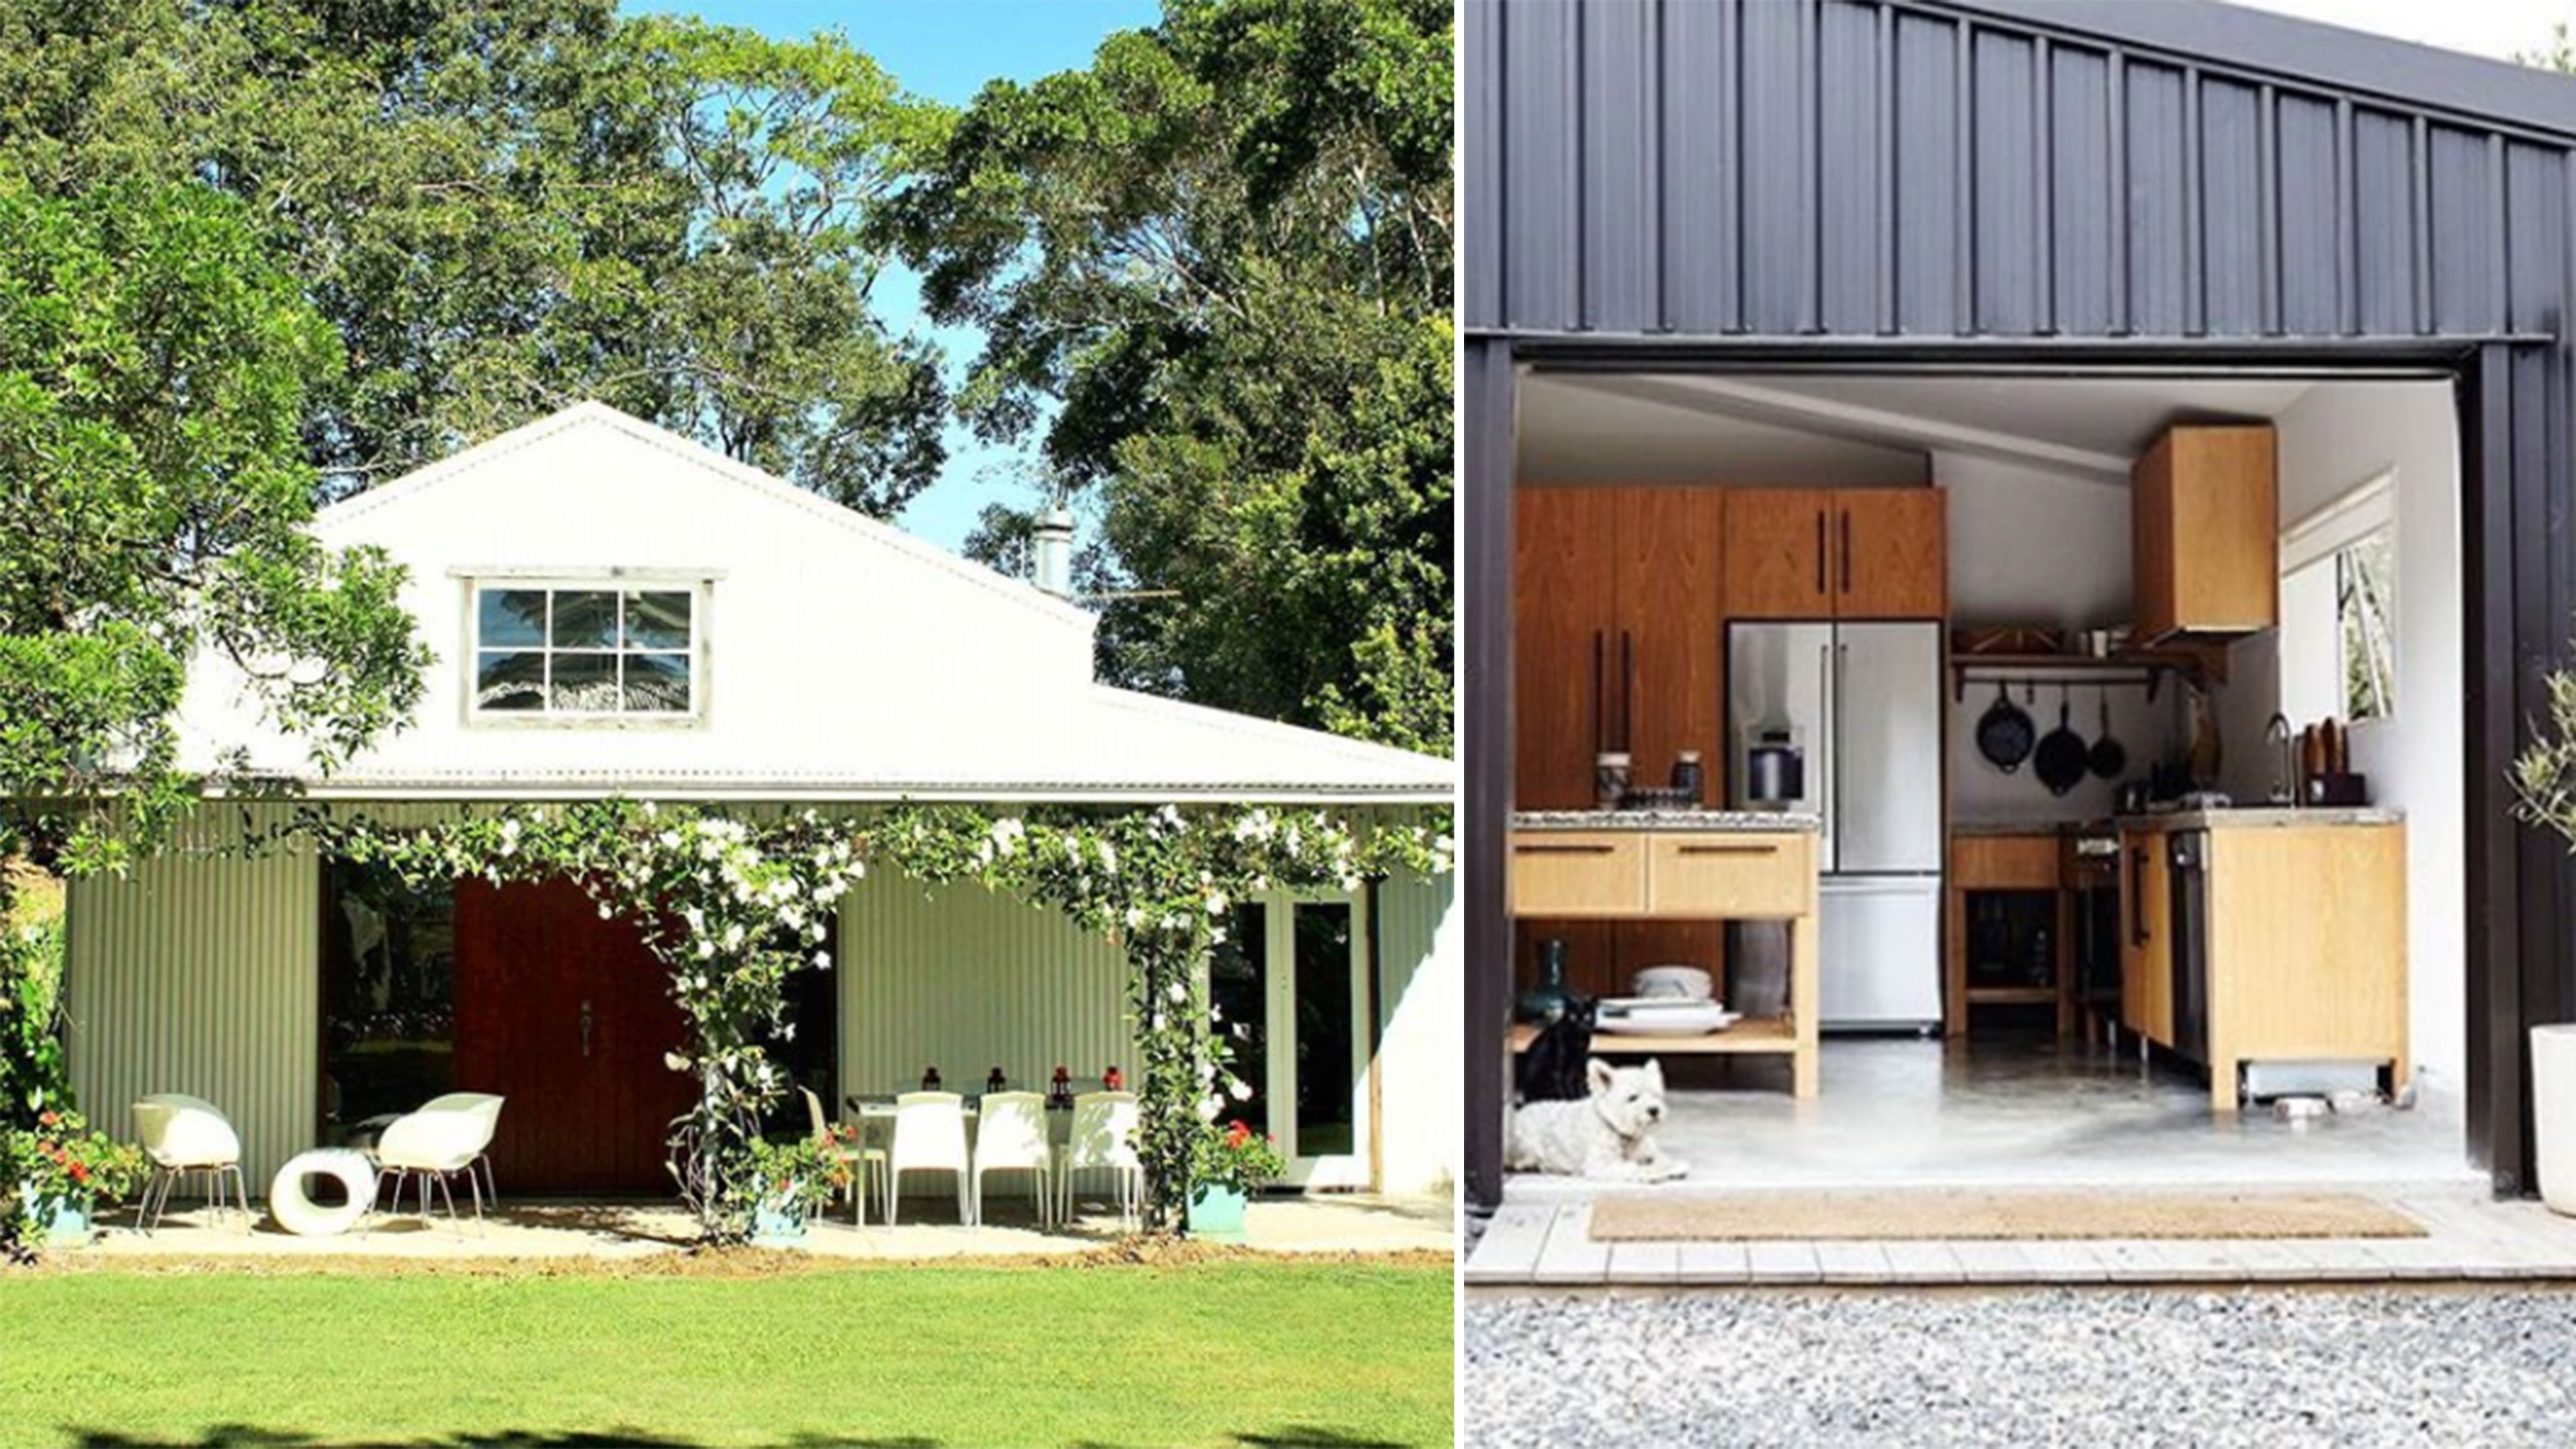 Shed Home Hybrids Are The Latest Home Trend